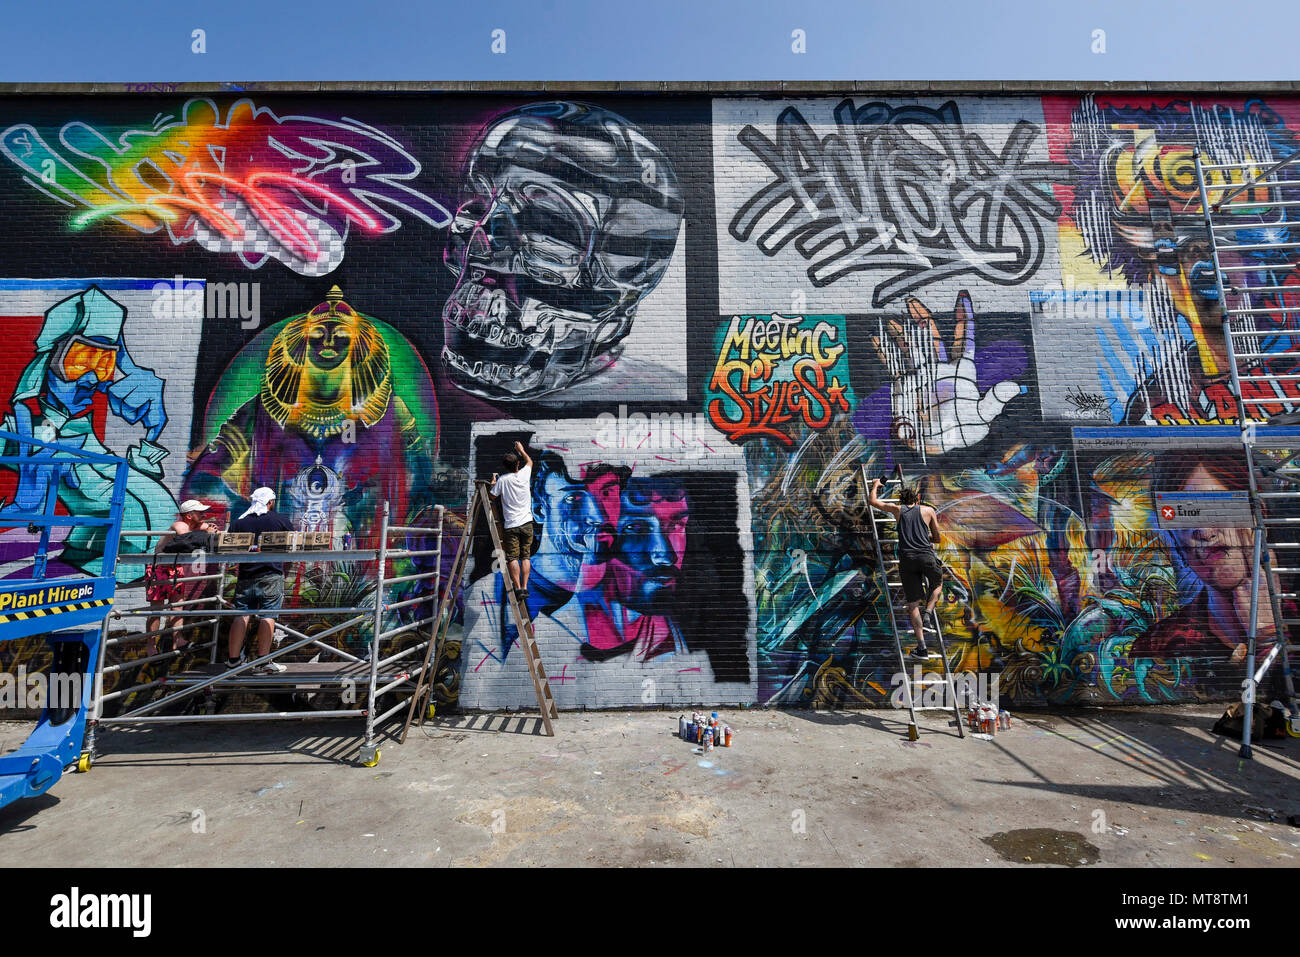 London uk 28 may 2018 street artists l to r jim vision core246 and samer at work at meeting of styles near brick lane in east london